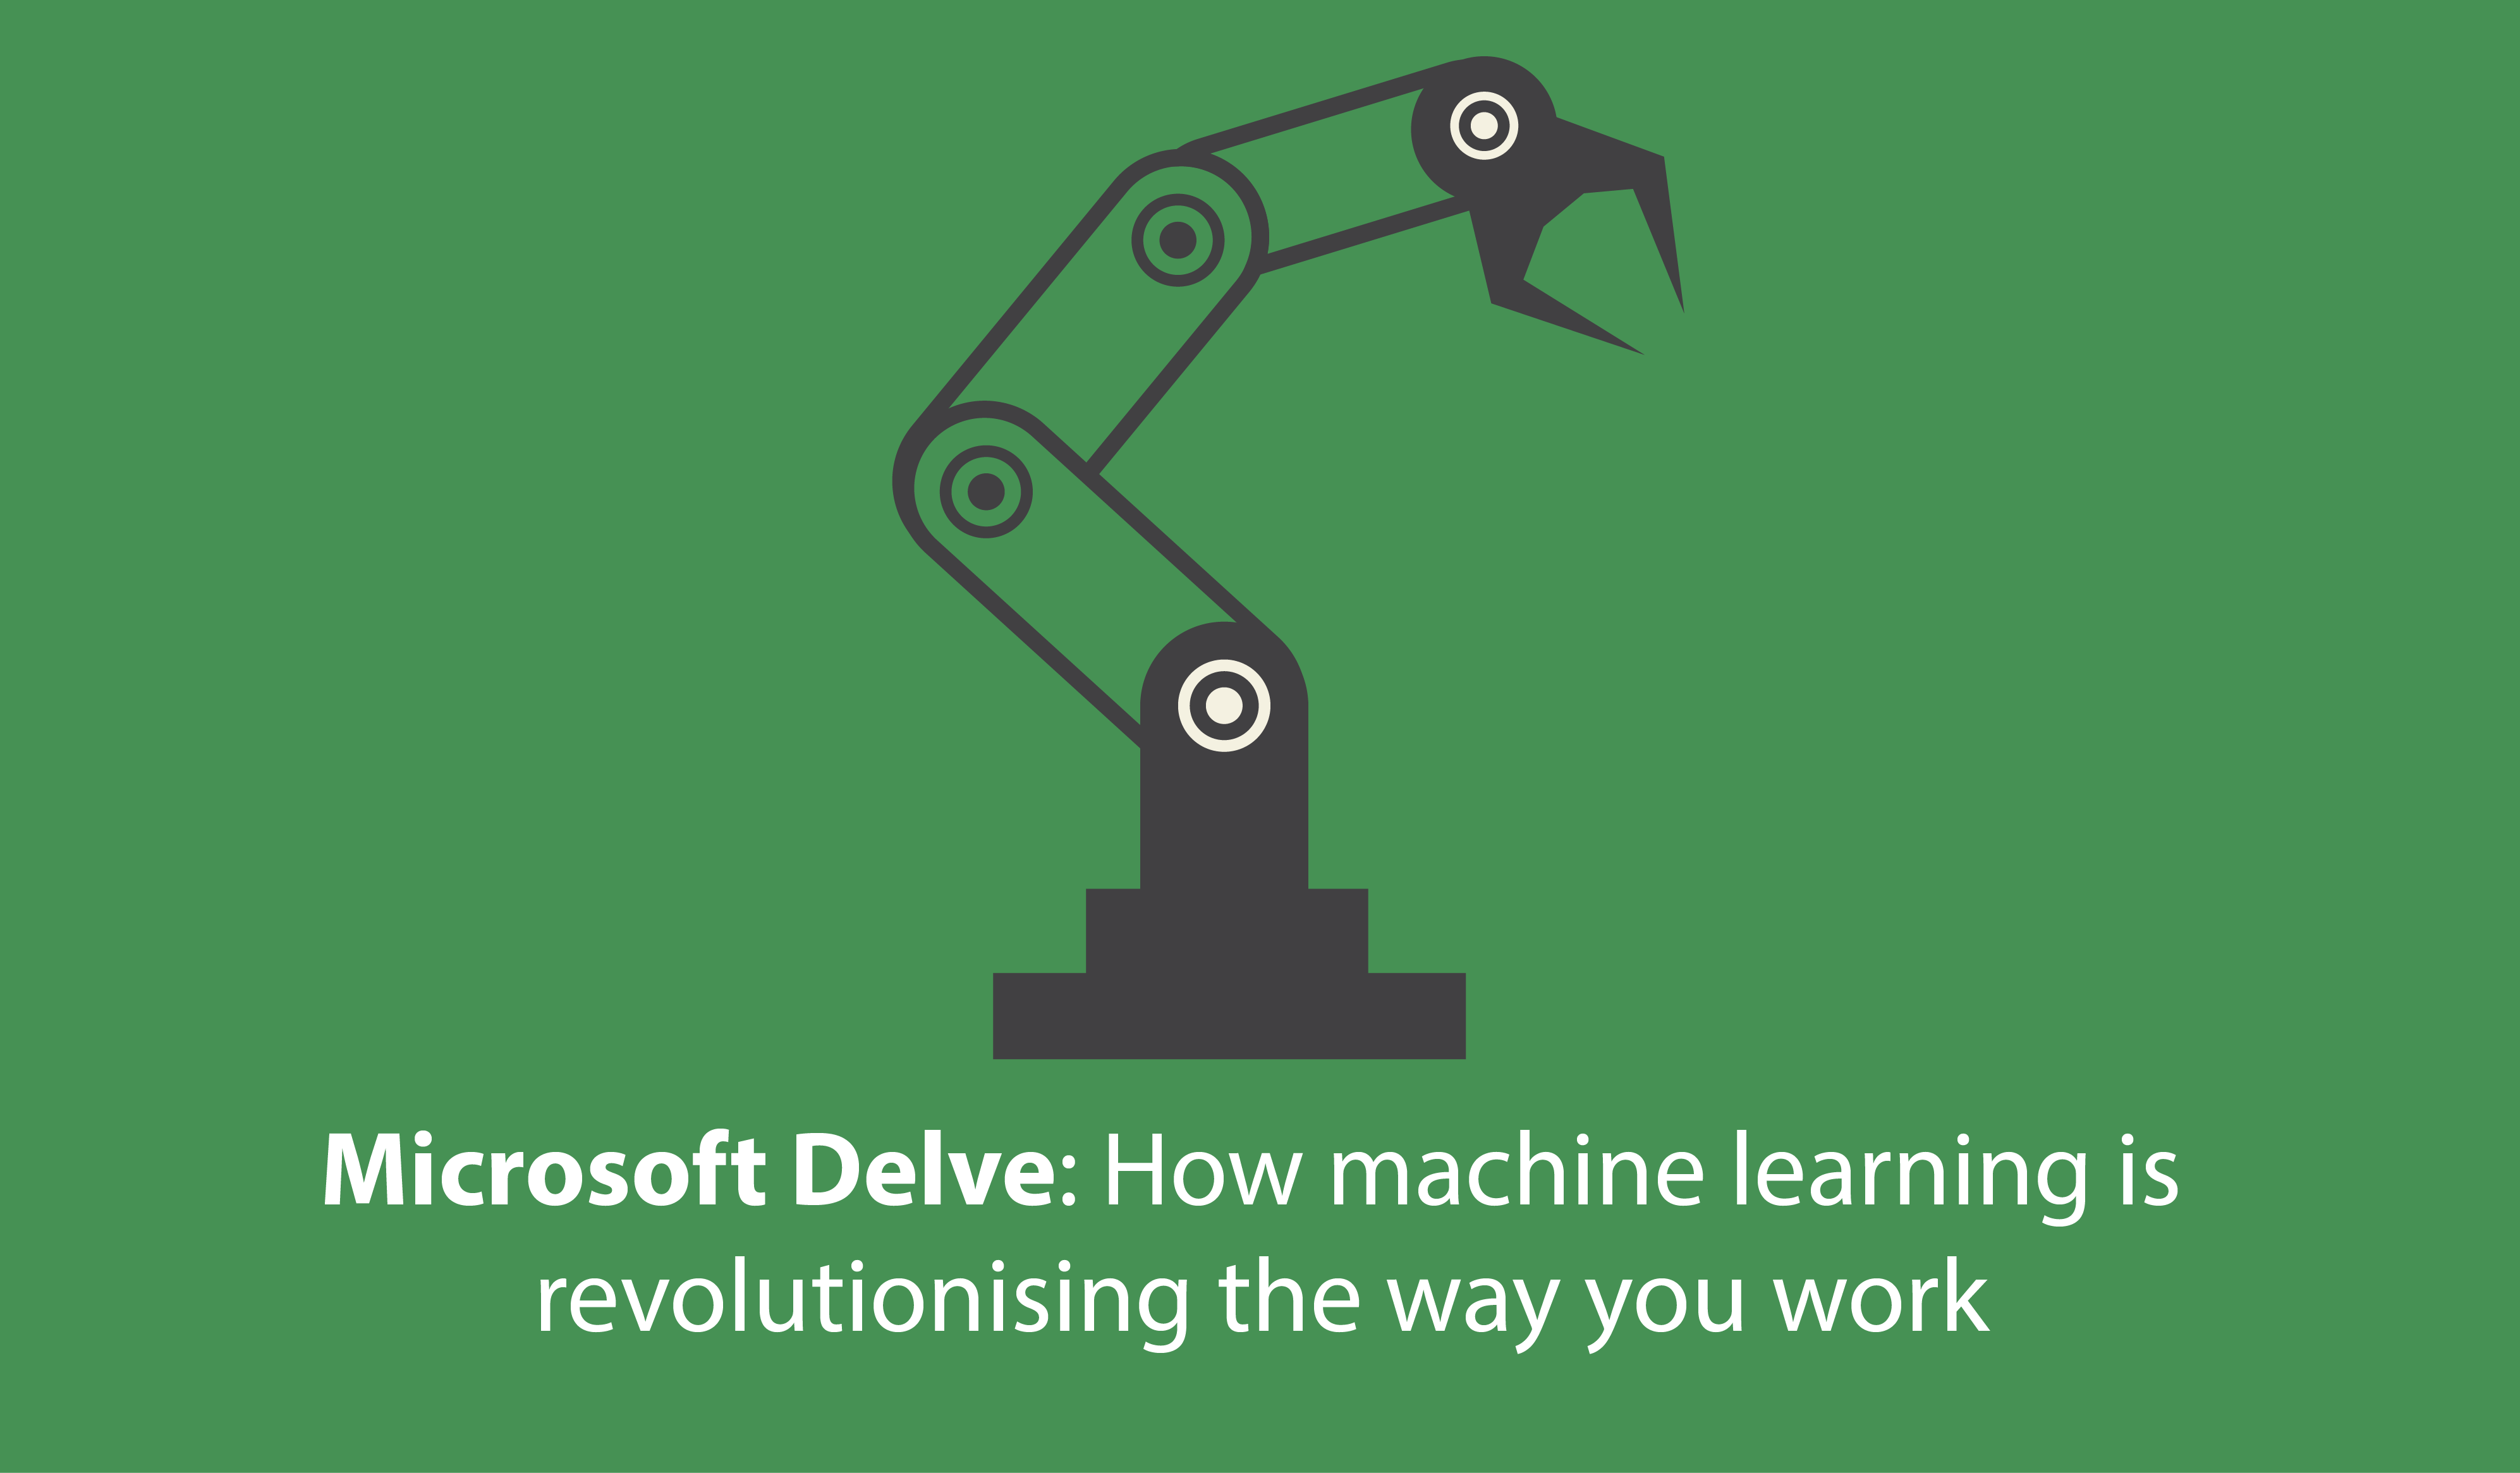 Microsoft Delve: How machine learning is revolutionising the way you work